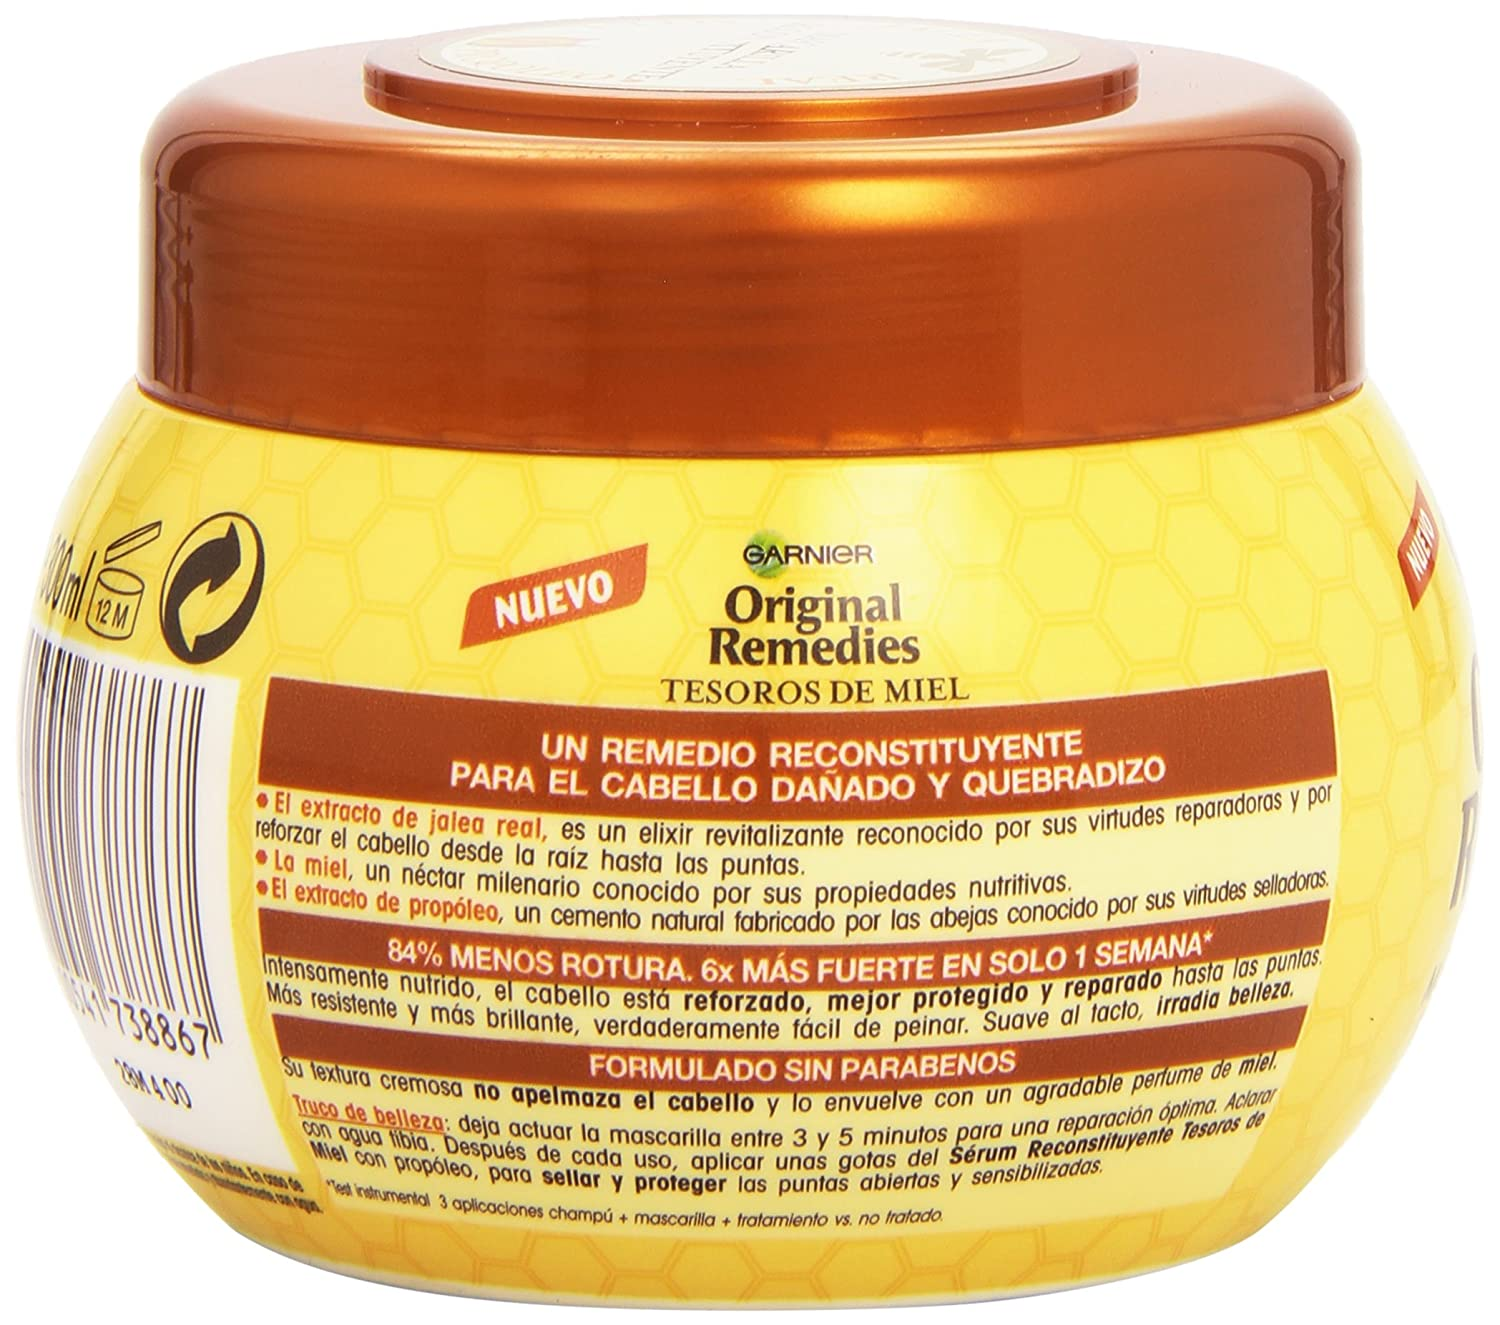 Garnier Original Remedies Mascarilla Tesoros Miel - 300 ml: Amazon.es: Amazon Pantry